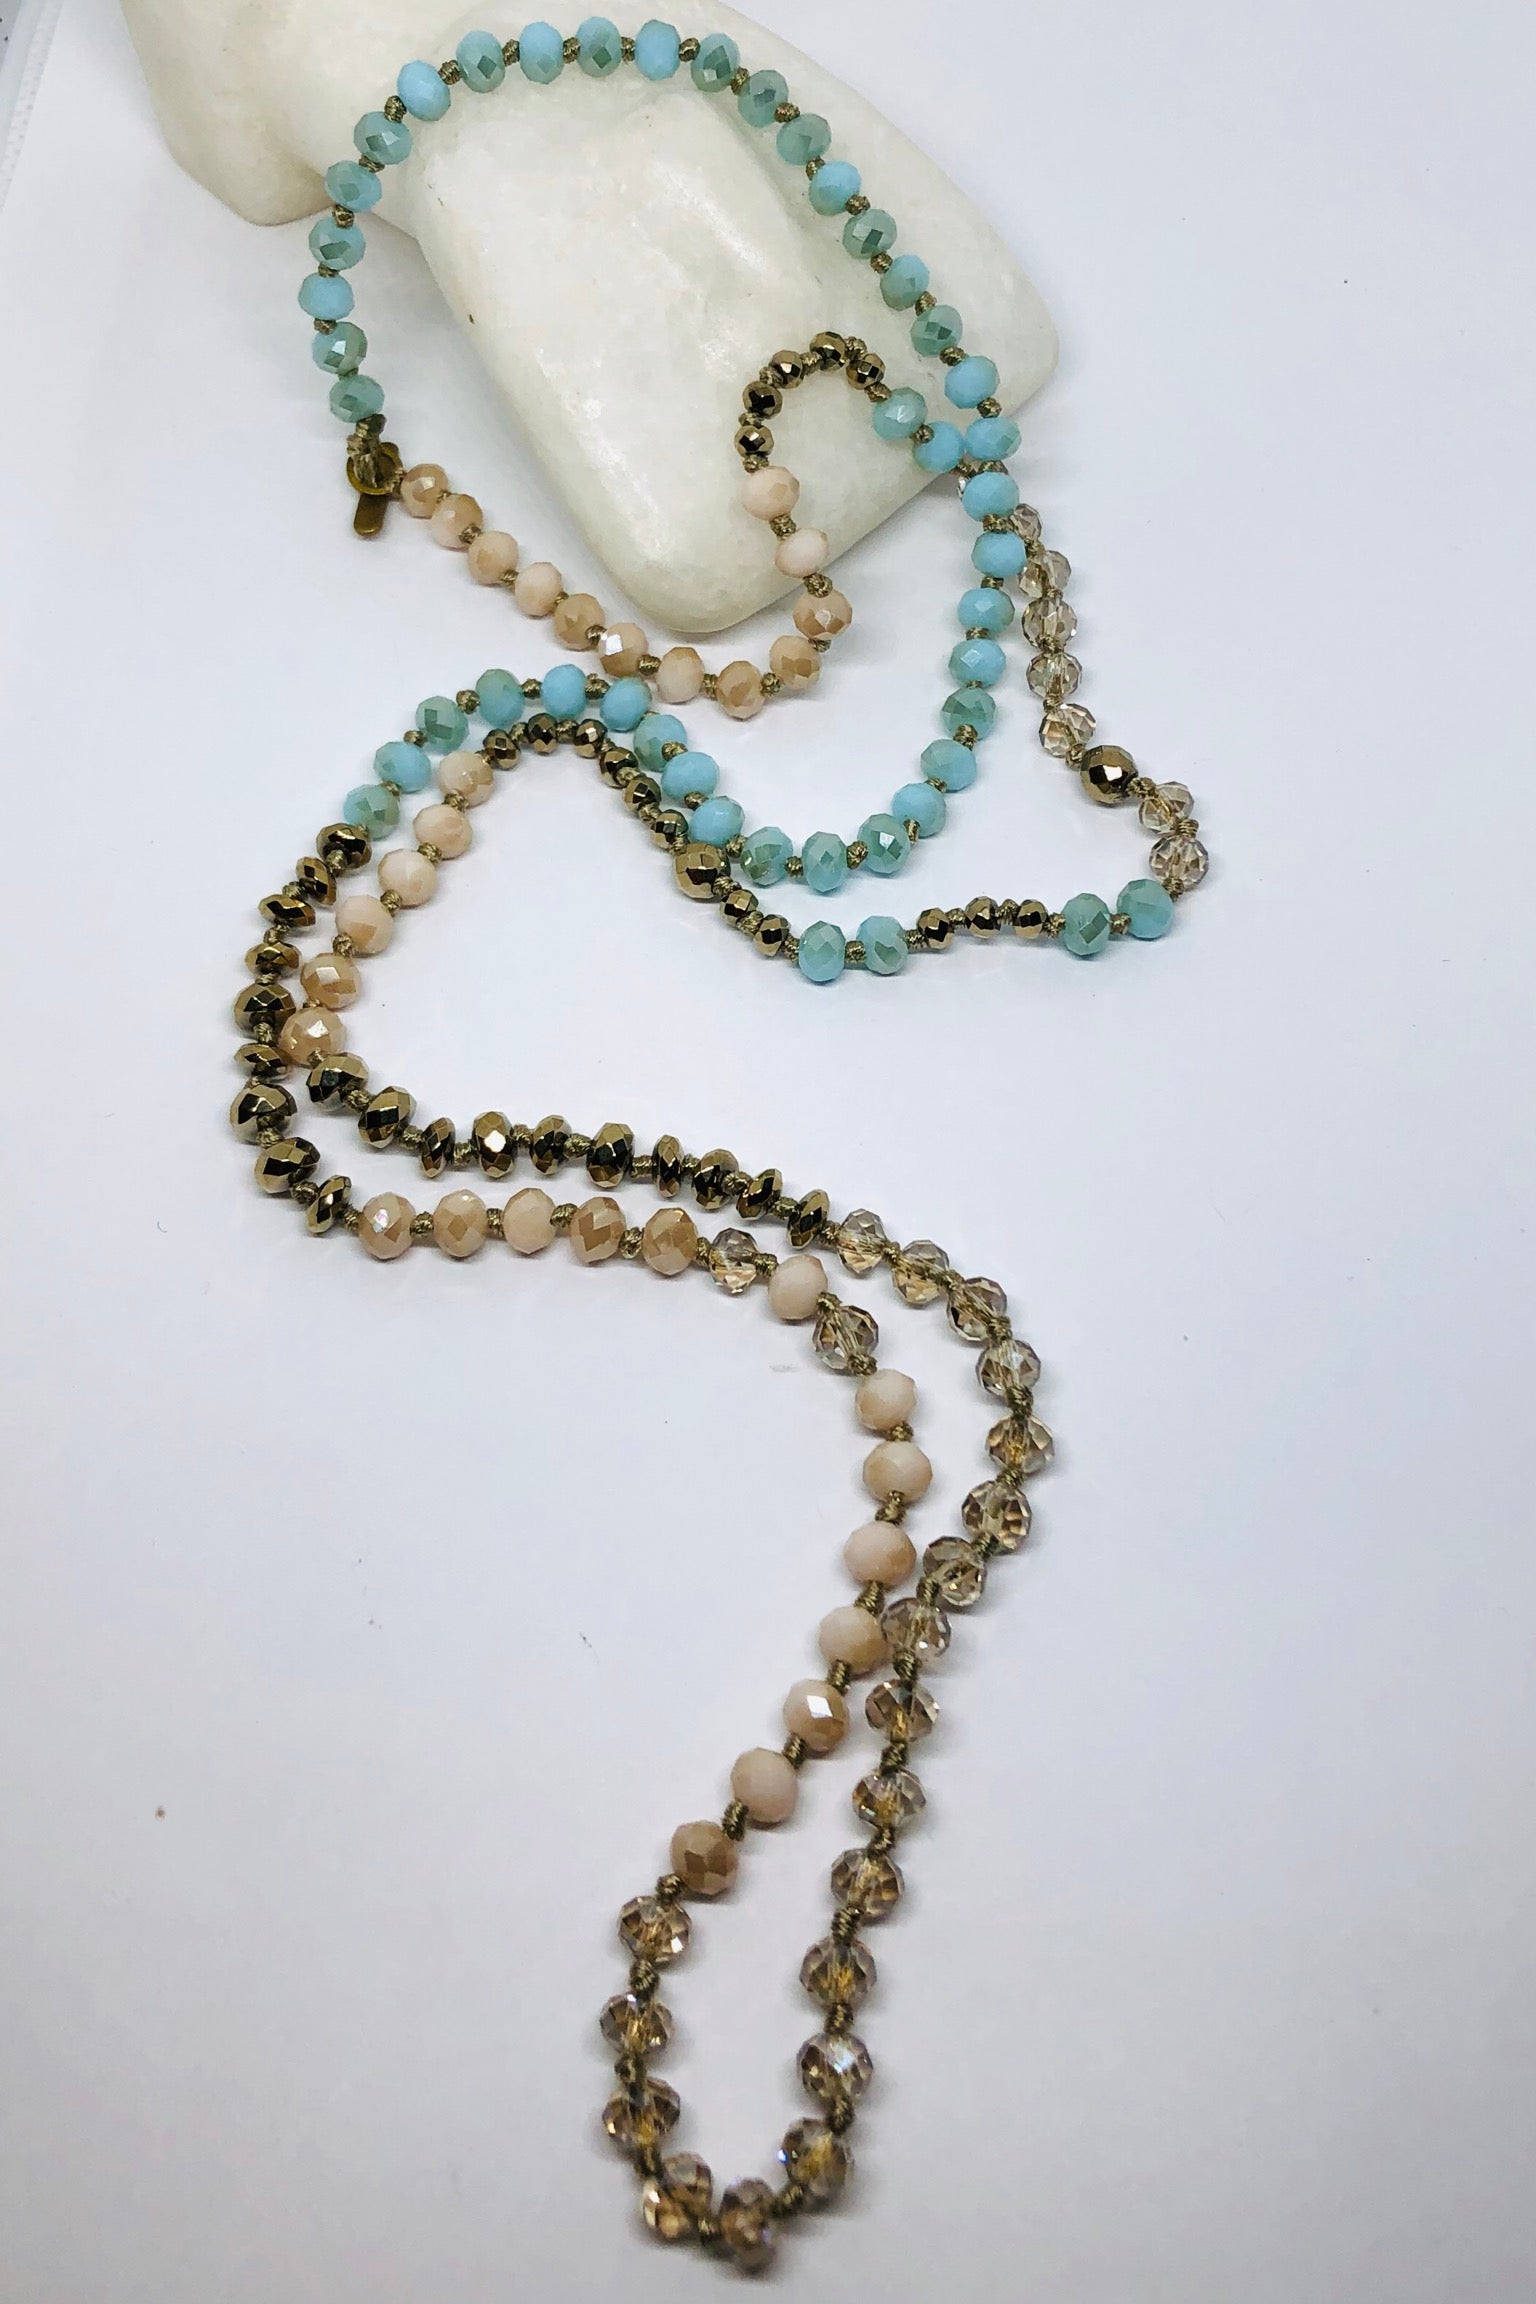 Necklace Geode Sea Foam, long beaded necklace in pretty seafoam colour